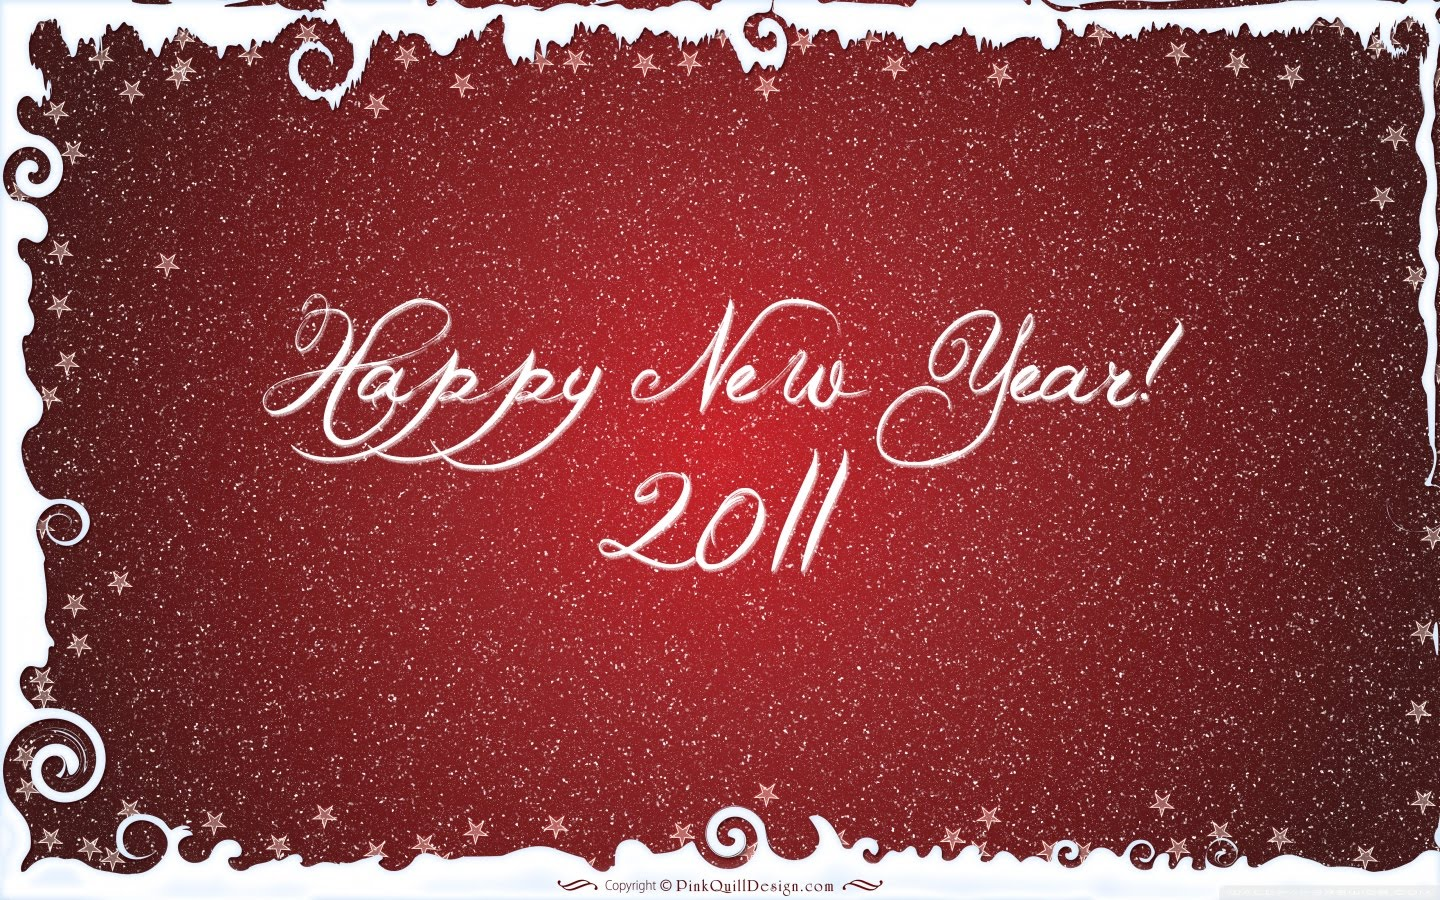 Download wallpapers free. 1440 x 900.Nice Happy New Year Text Messages